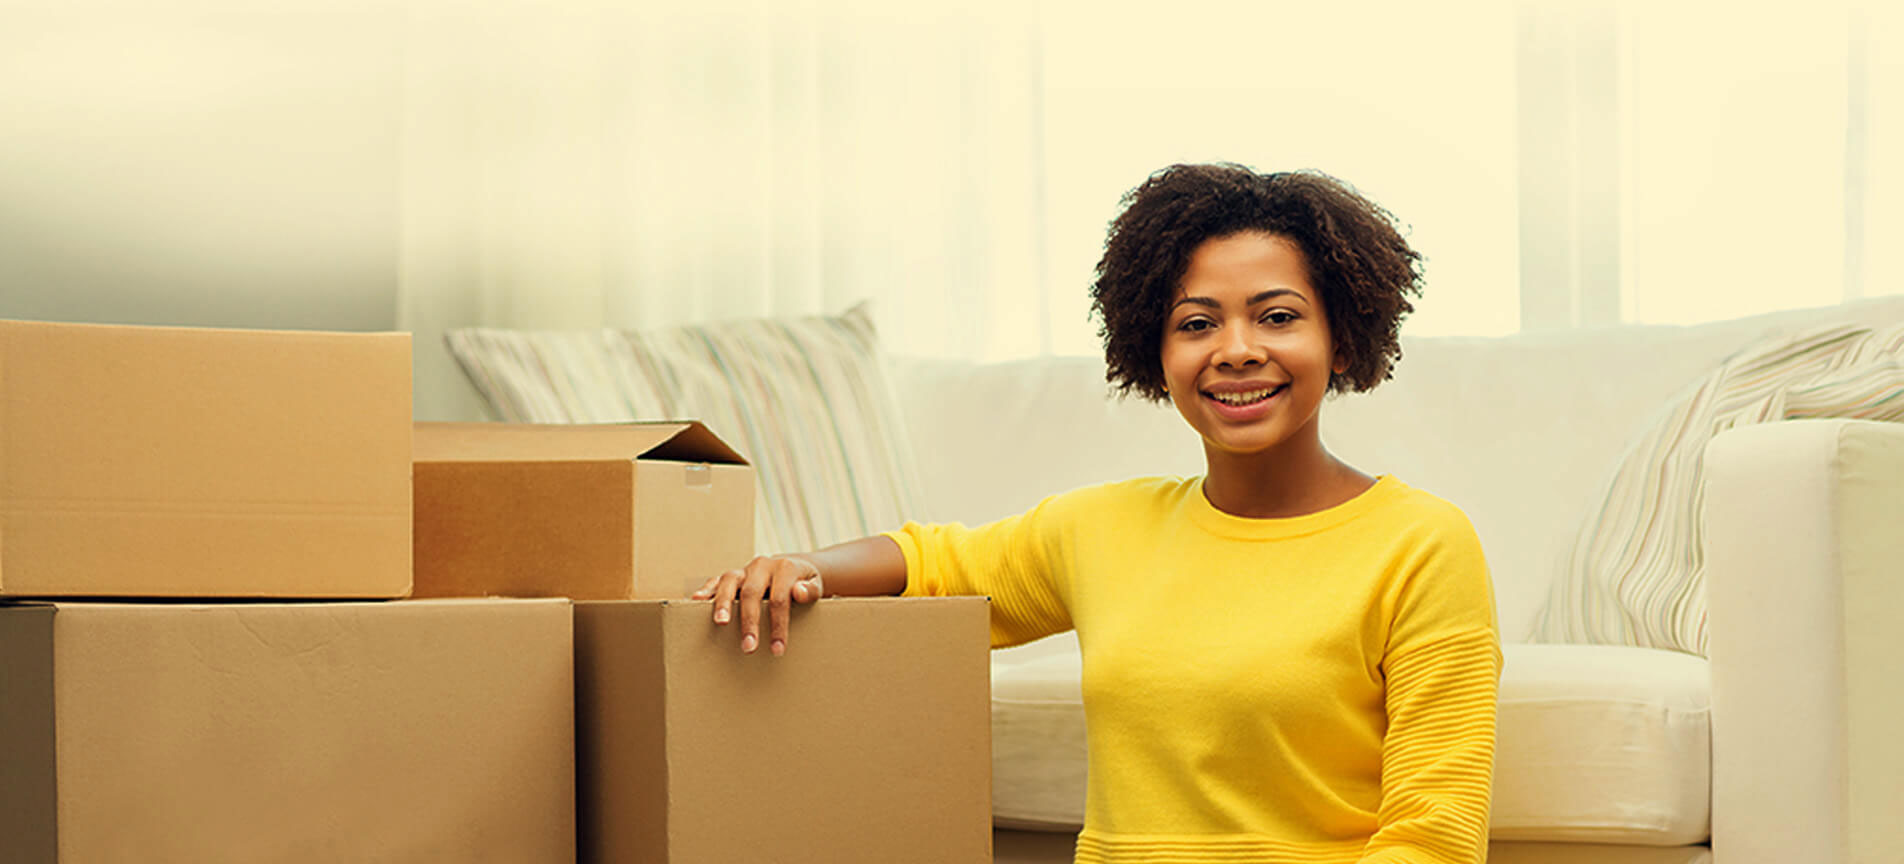 Image of a woman sitting by packed boxes in a living room.